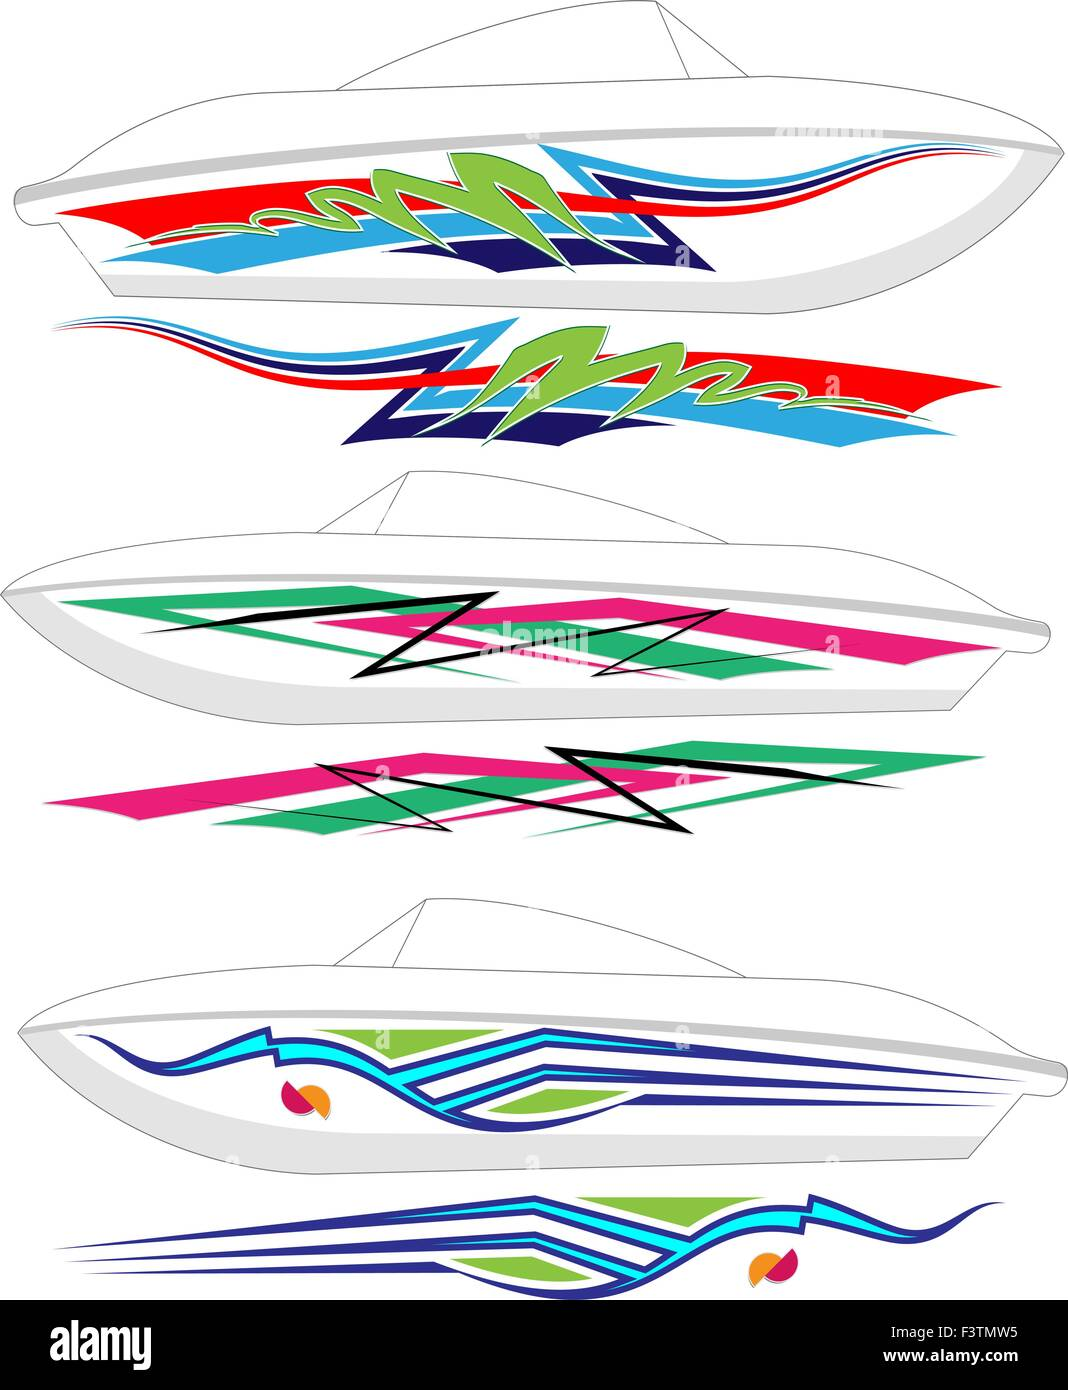 Bass Boat Graphic Design Layout